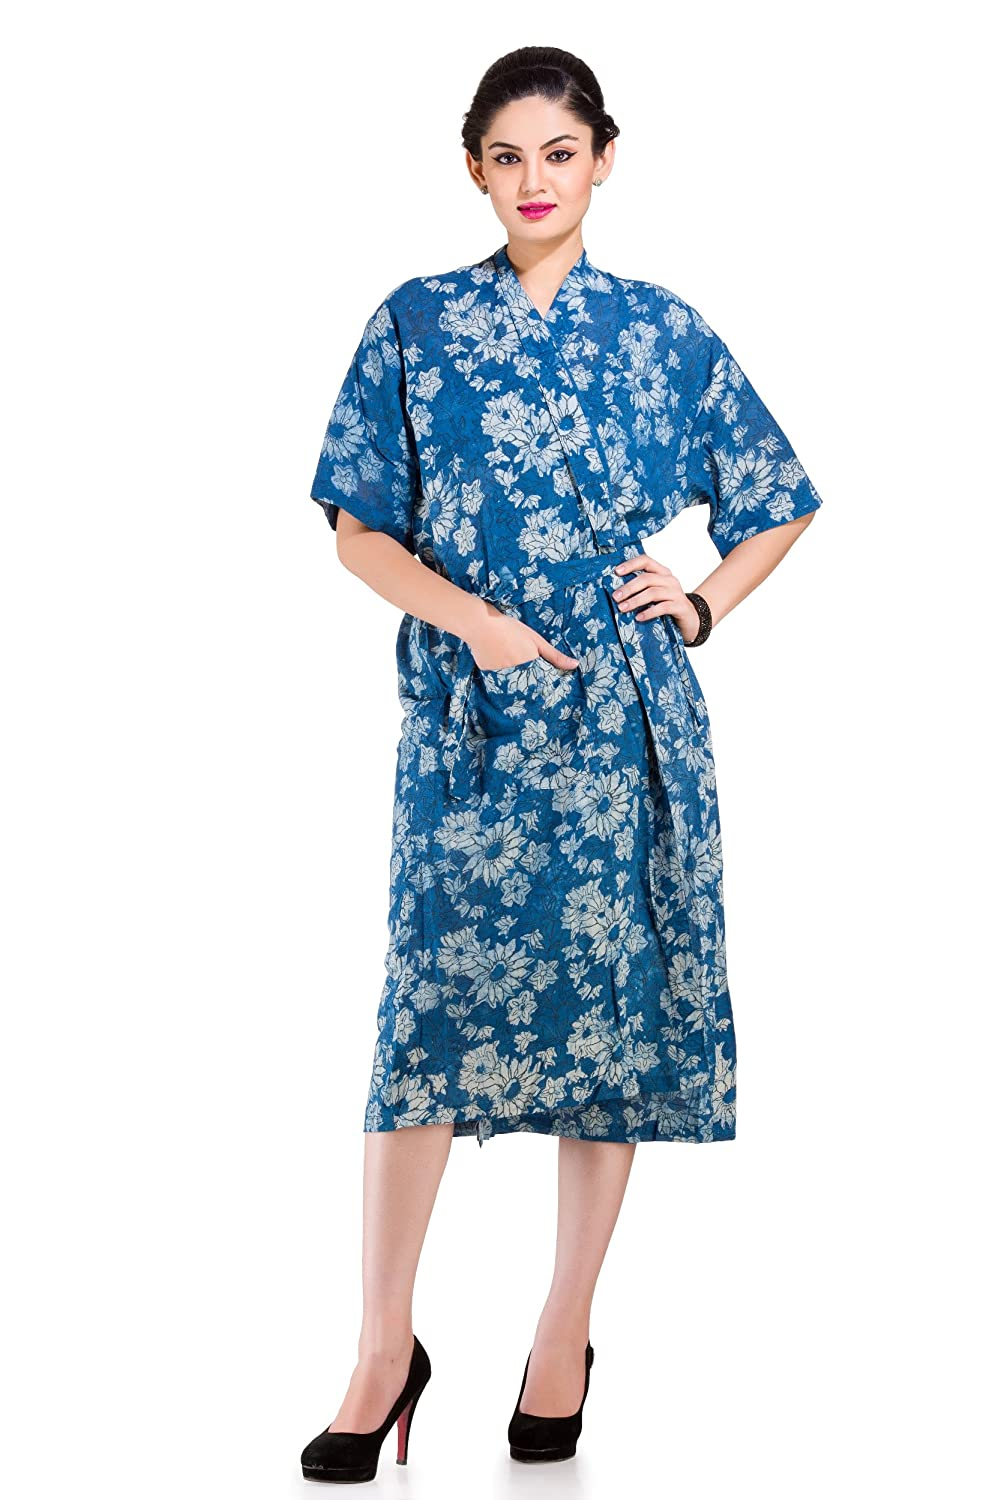 866e2afc13 Buy Handicraft-Palace Women s Cotton Floral Printed Bath Robes (Indigo  Blue) Online at Low Prices in India - Amazon.in